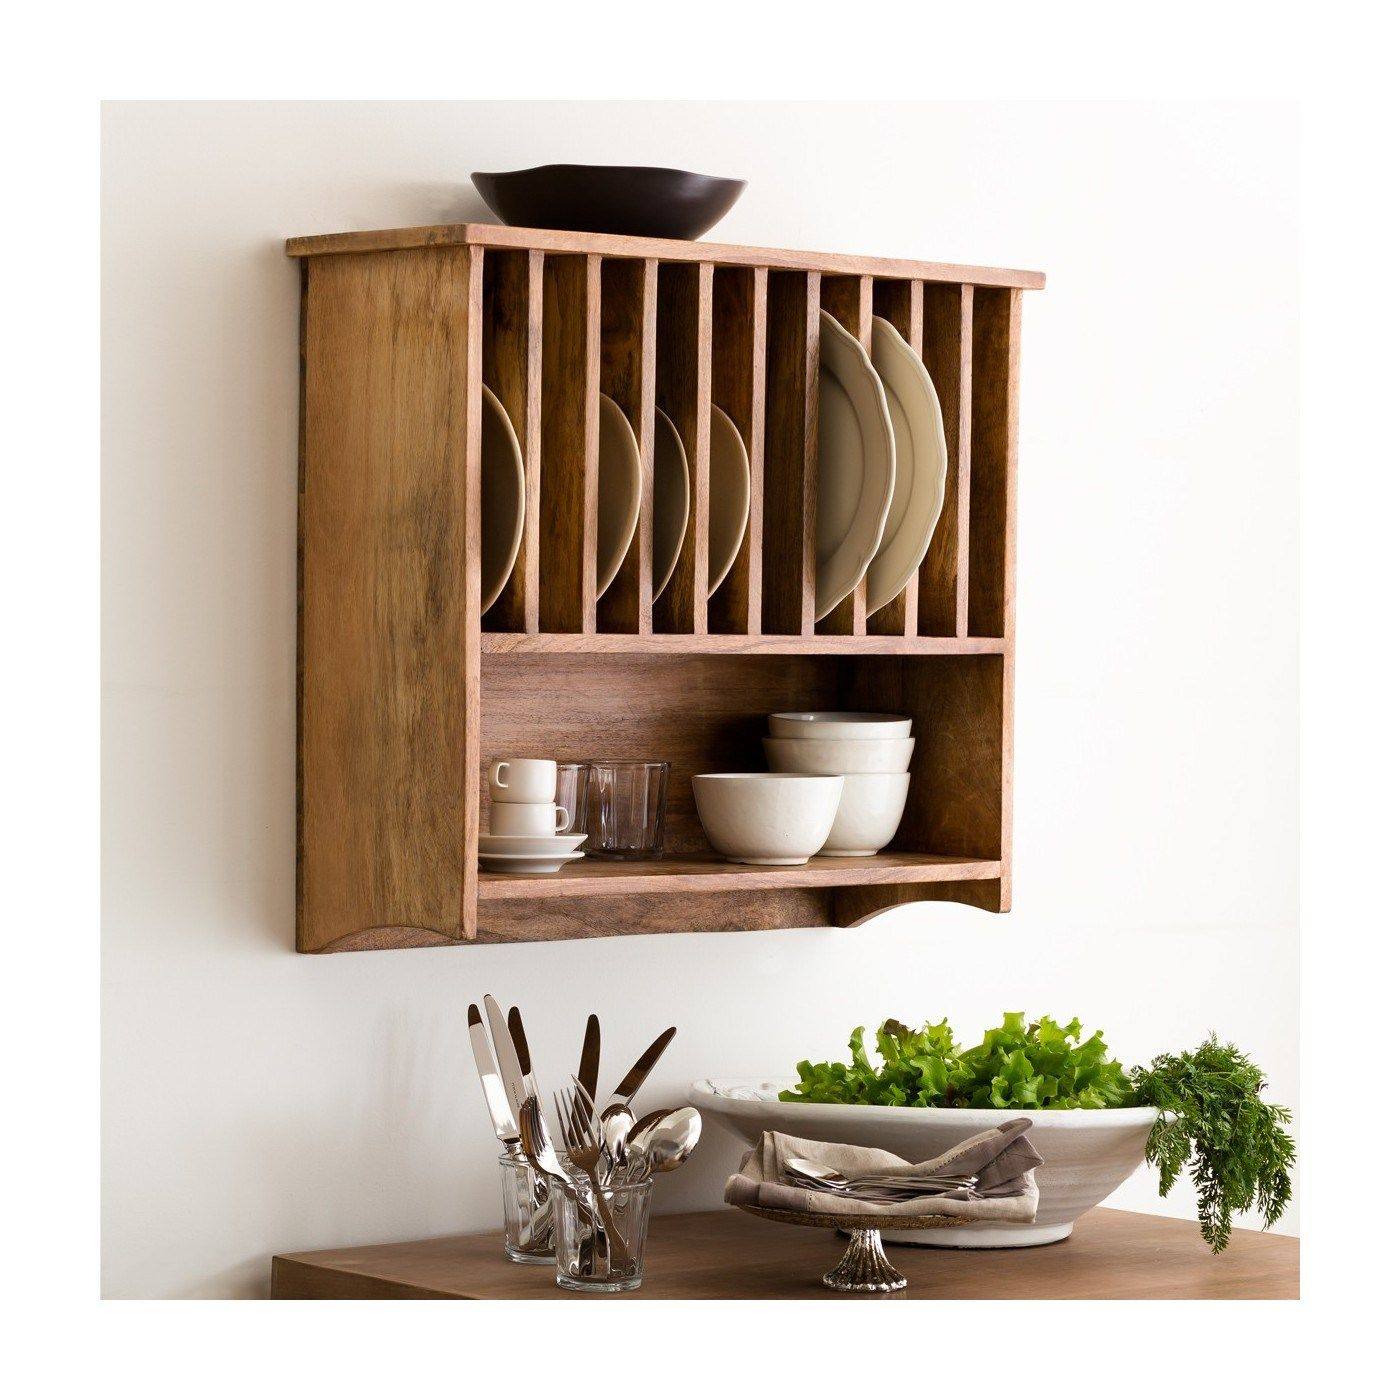 Kitchen Cabinets Plate Rack: Kitchen Desaign Simple Kitchen Wall Mounted Plate Racks